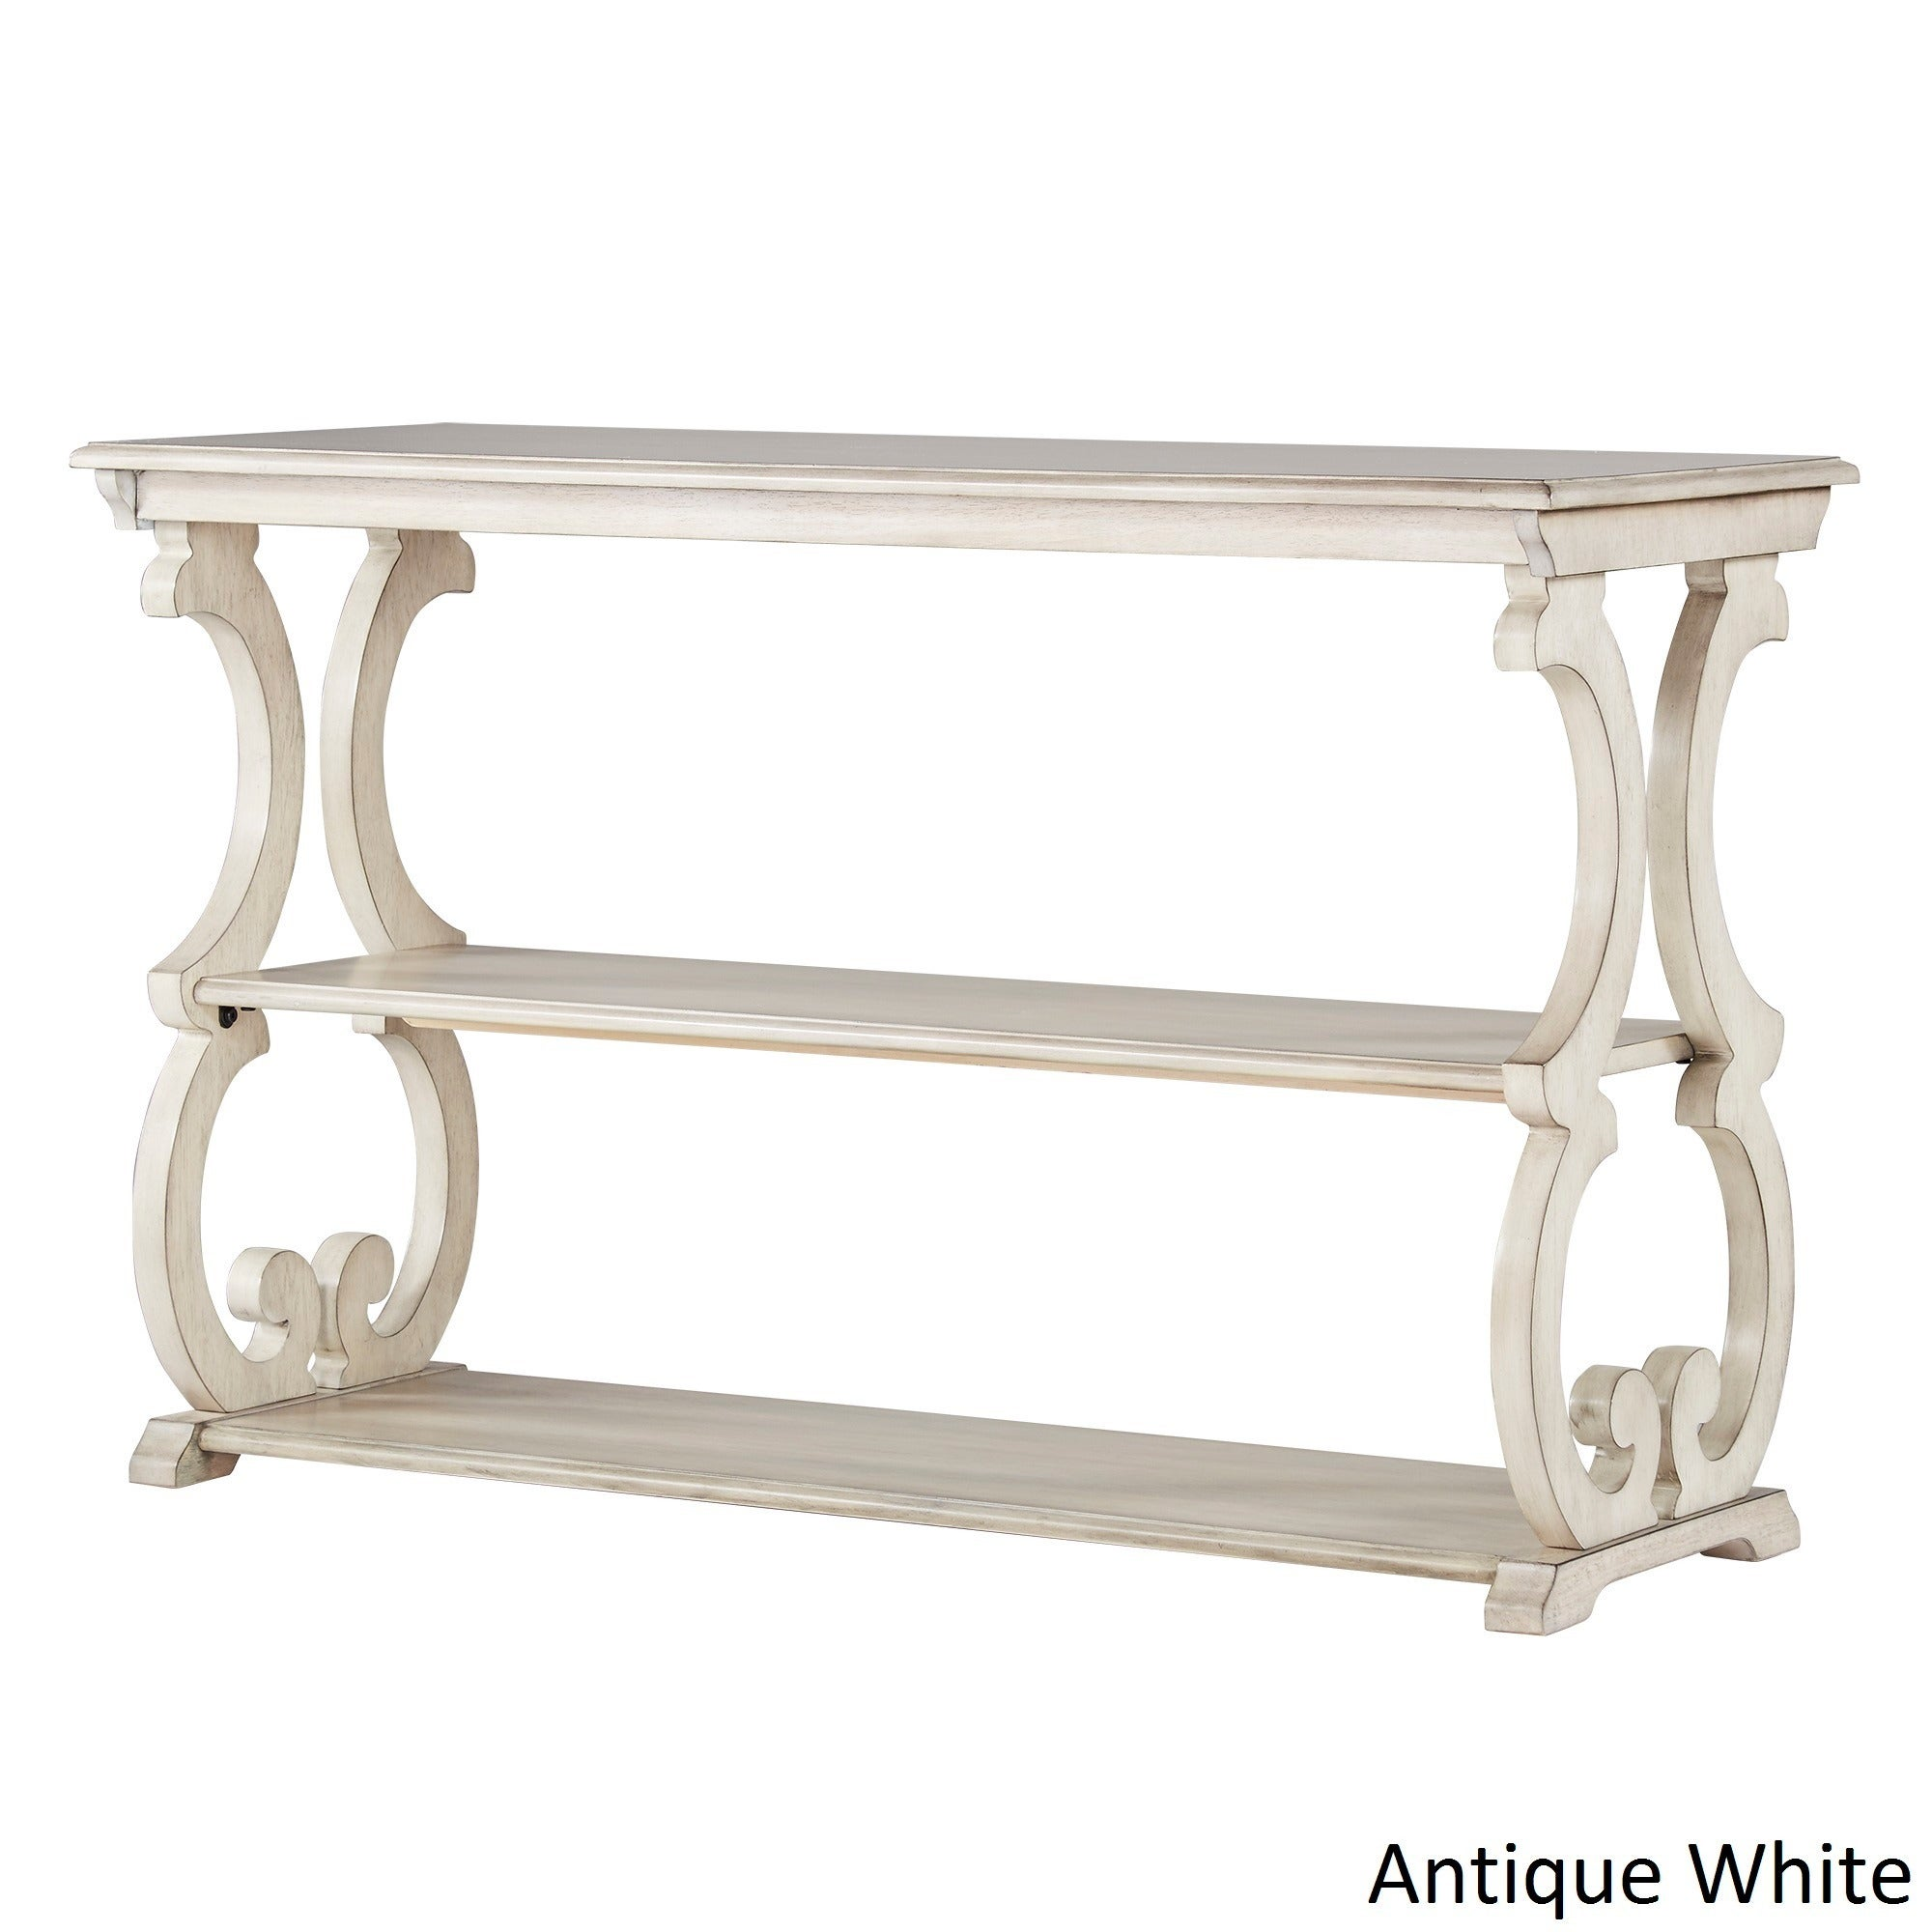 White sofa table Wood Top Shop Lorraine Wood Scroll Tv Stand Sofa Table By Inspire Classic Free Shipping Today Overstockcom 14139014 Overstock Shop Lorraine Wood Scroll Tv Stand Sofa Table By Inspire Classic